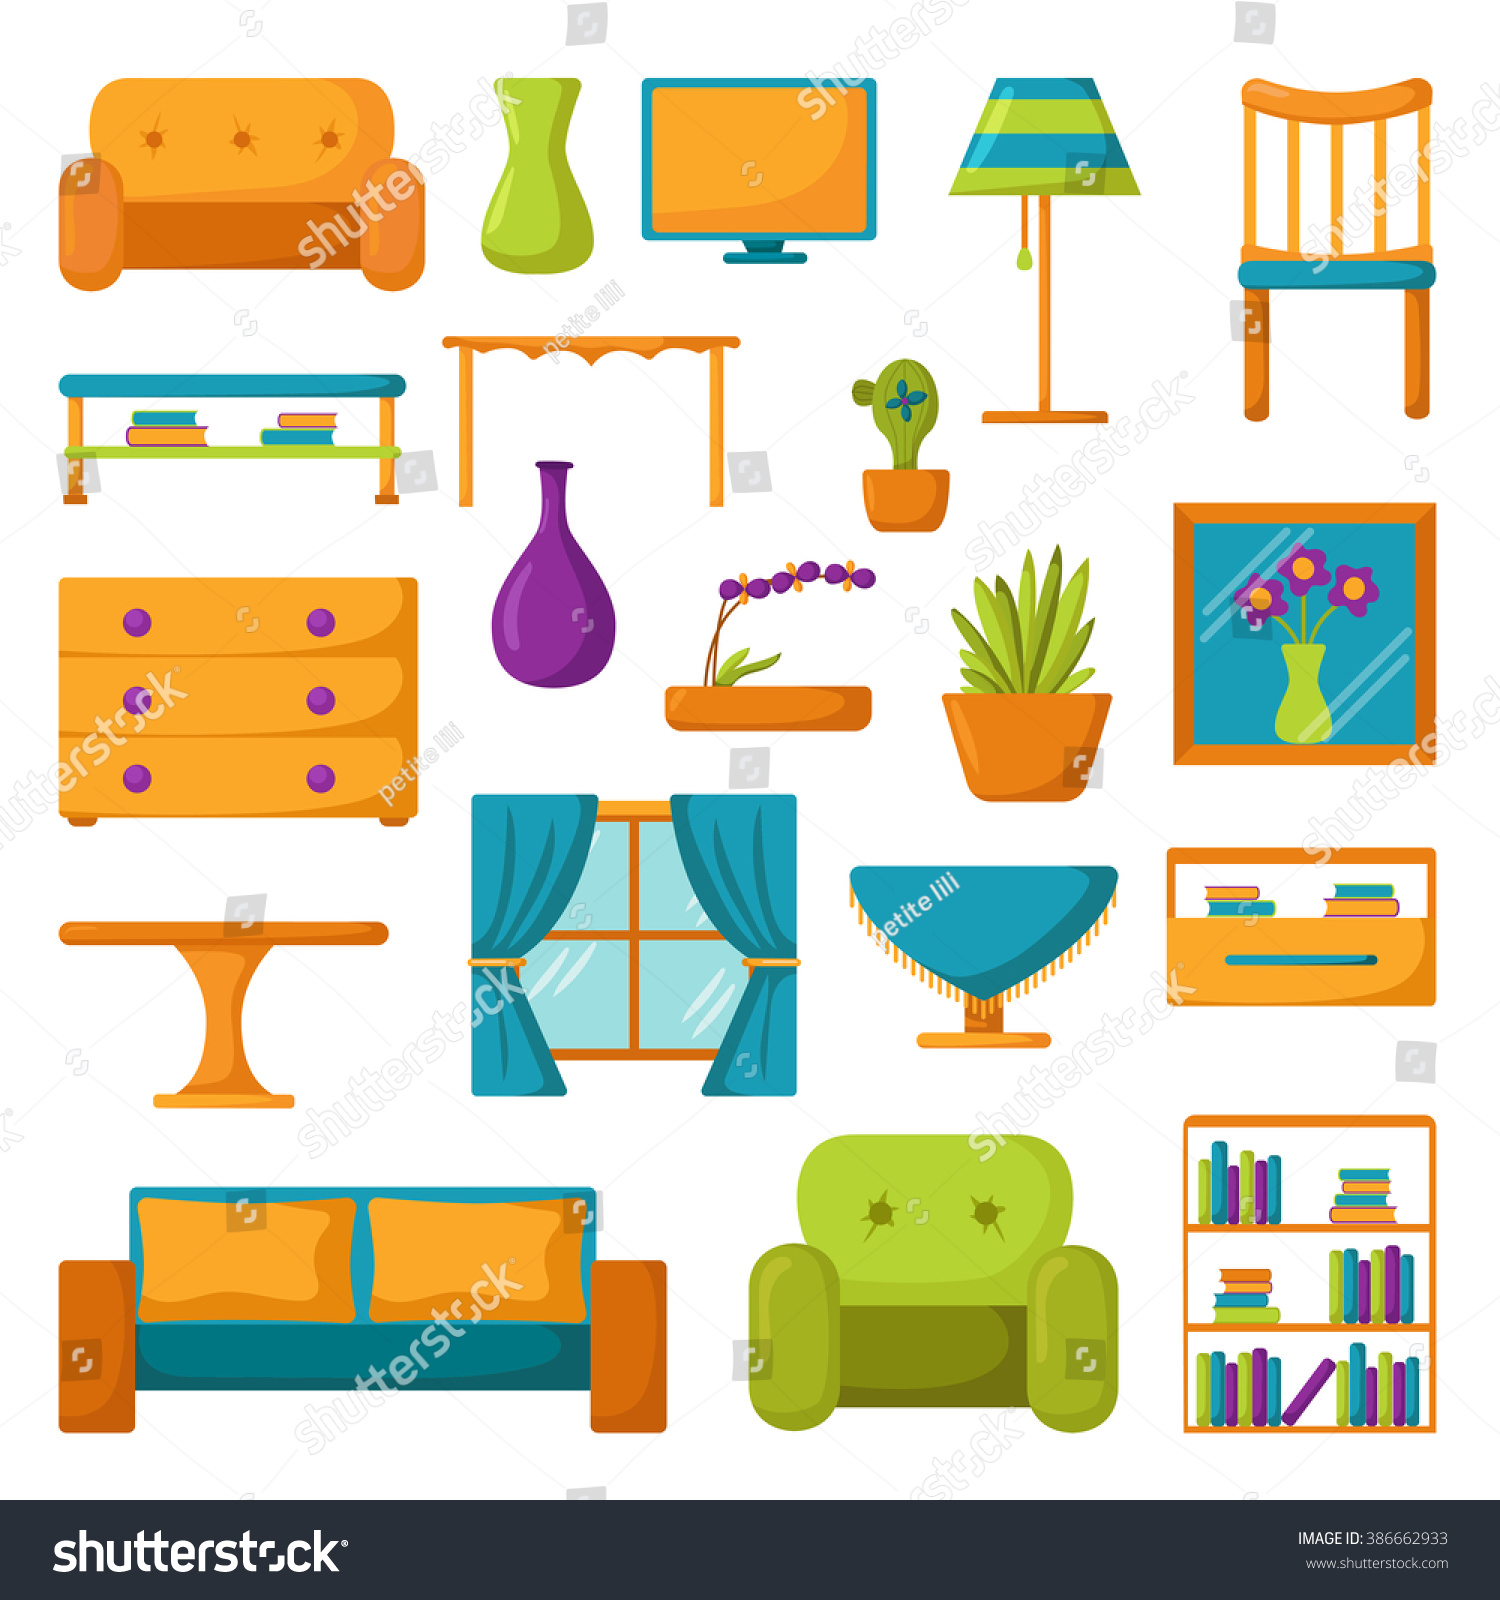 Living Room Clip Art: Living Room Interior. Living Room Furniture. Set Of Vector